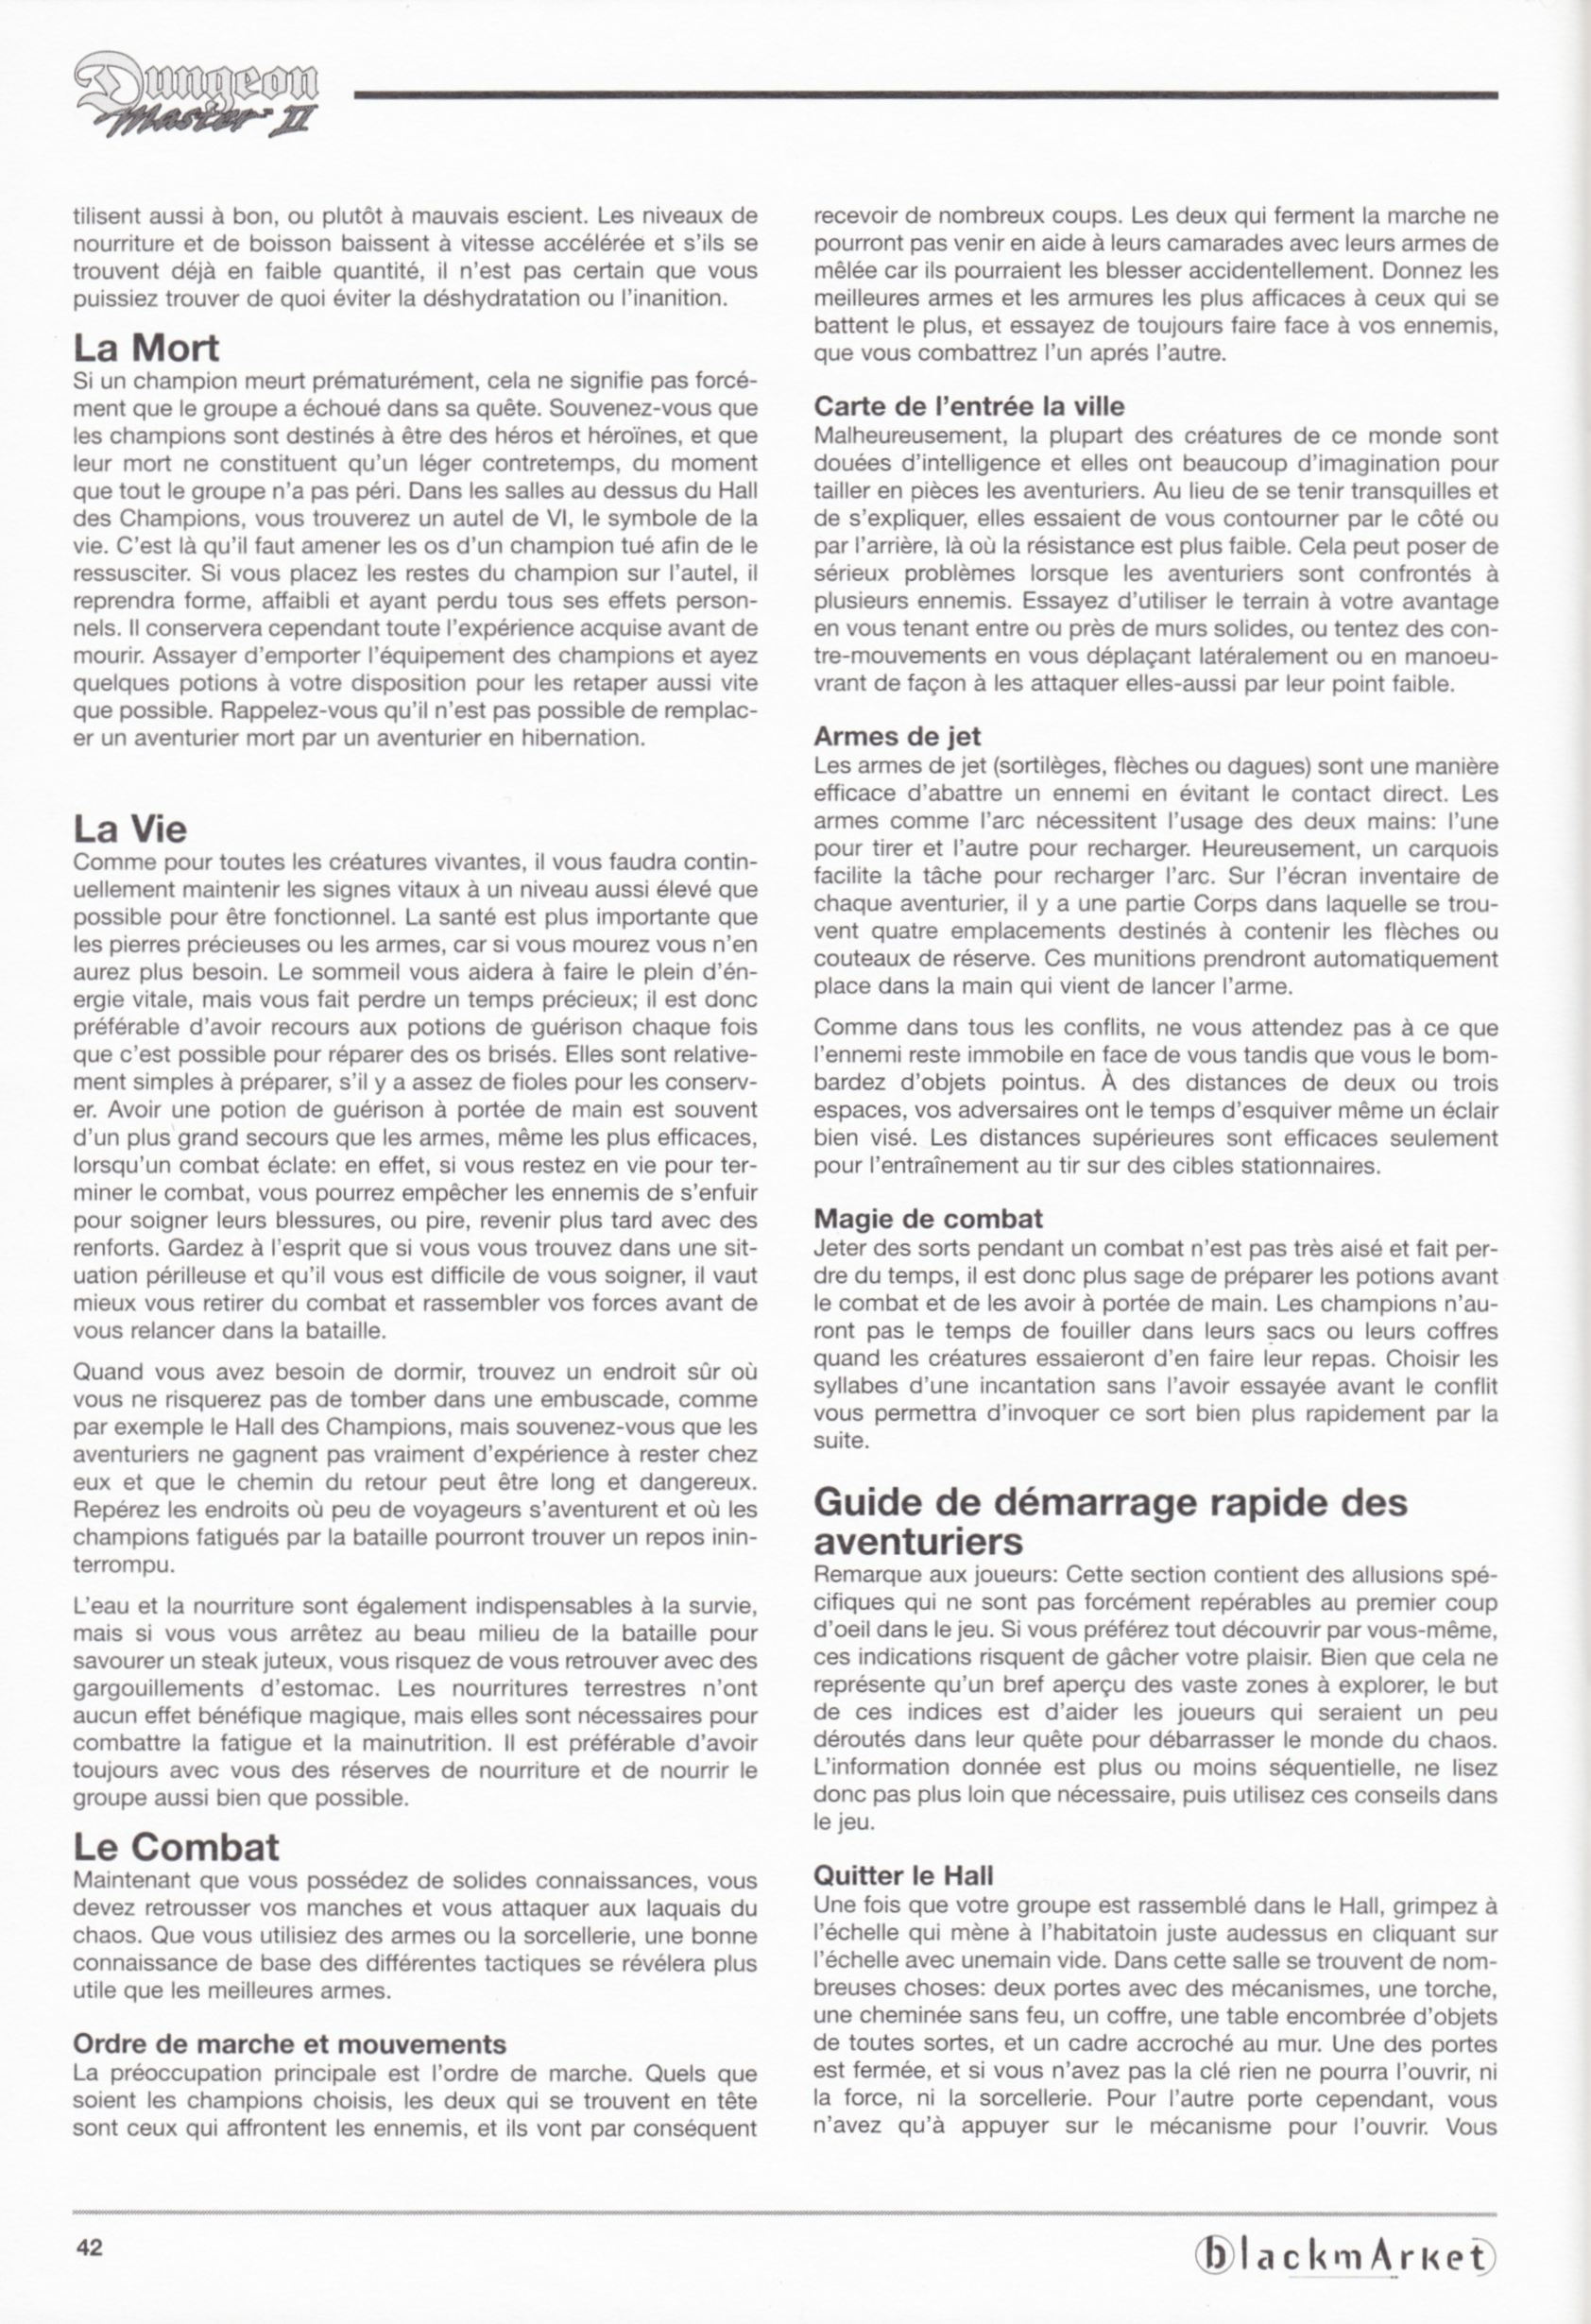 Game - Dungeon Master II - DE - PC - Blackmarket With Manual - Manual - Page 044 - Scan